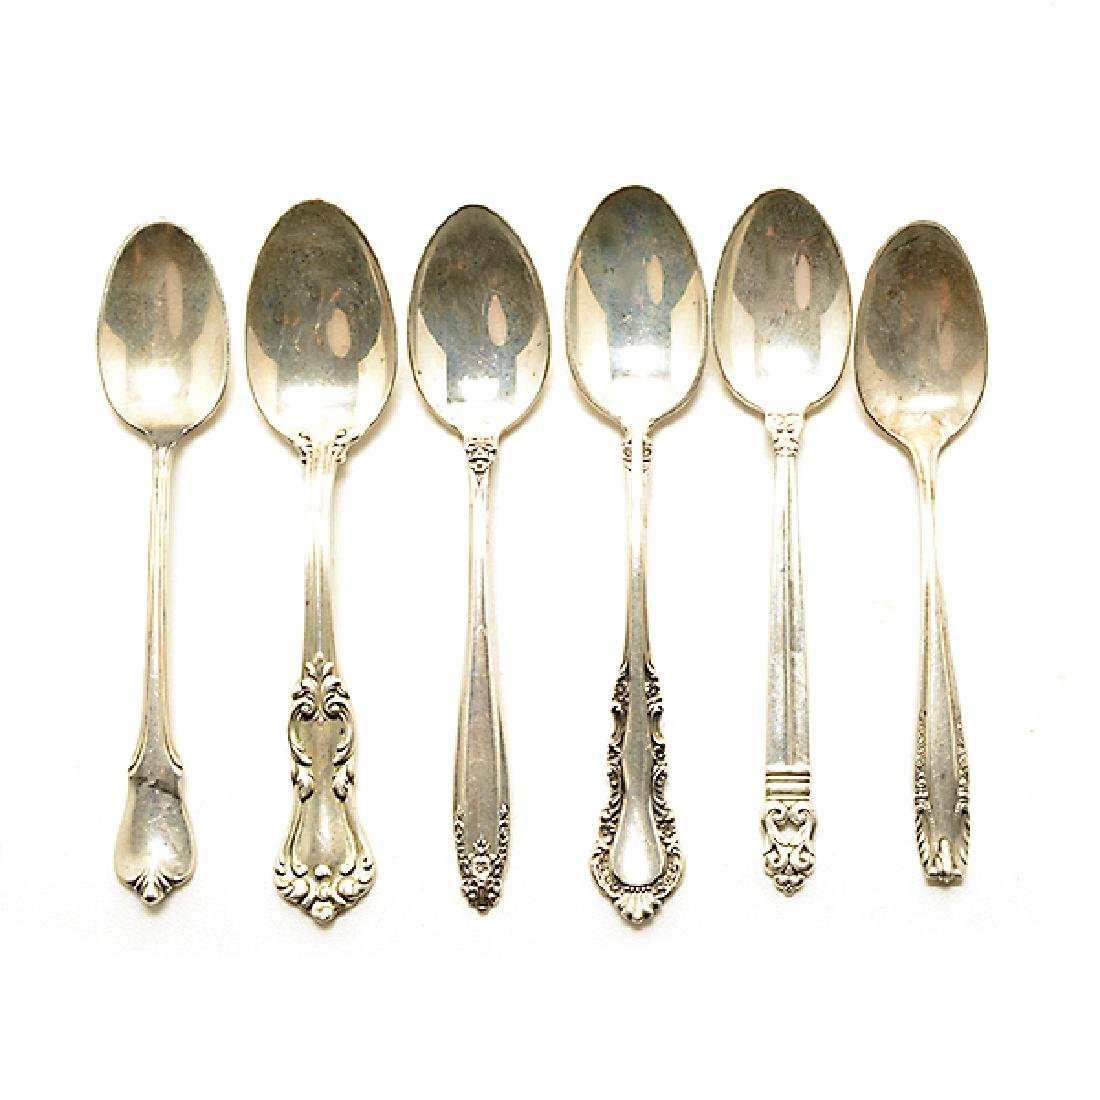 Collection of Assorted Sterling Flatware and Serving - 2